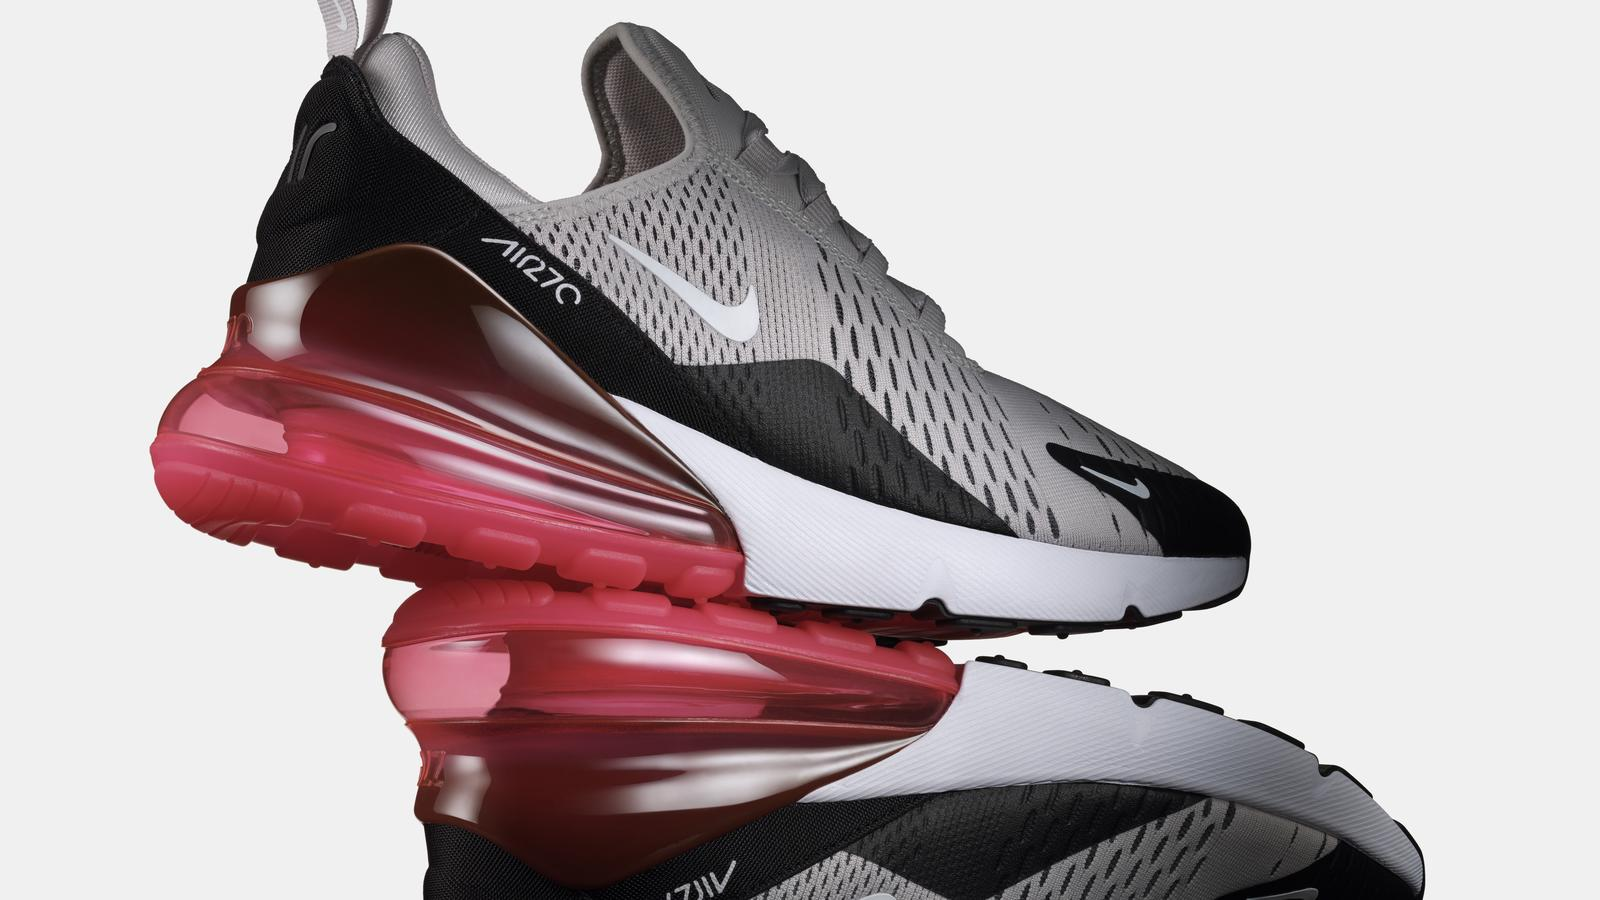 9a51b0435e Nike's Air Max 270, VaporMax, and Epic React are boosting its US sales —  Quartzy